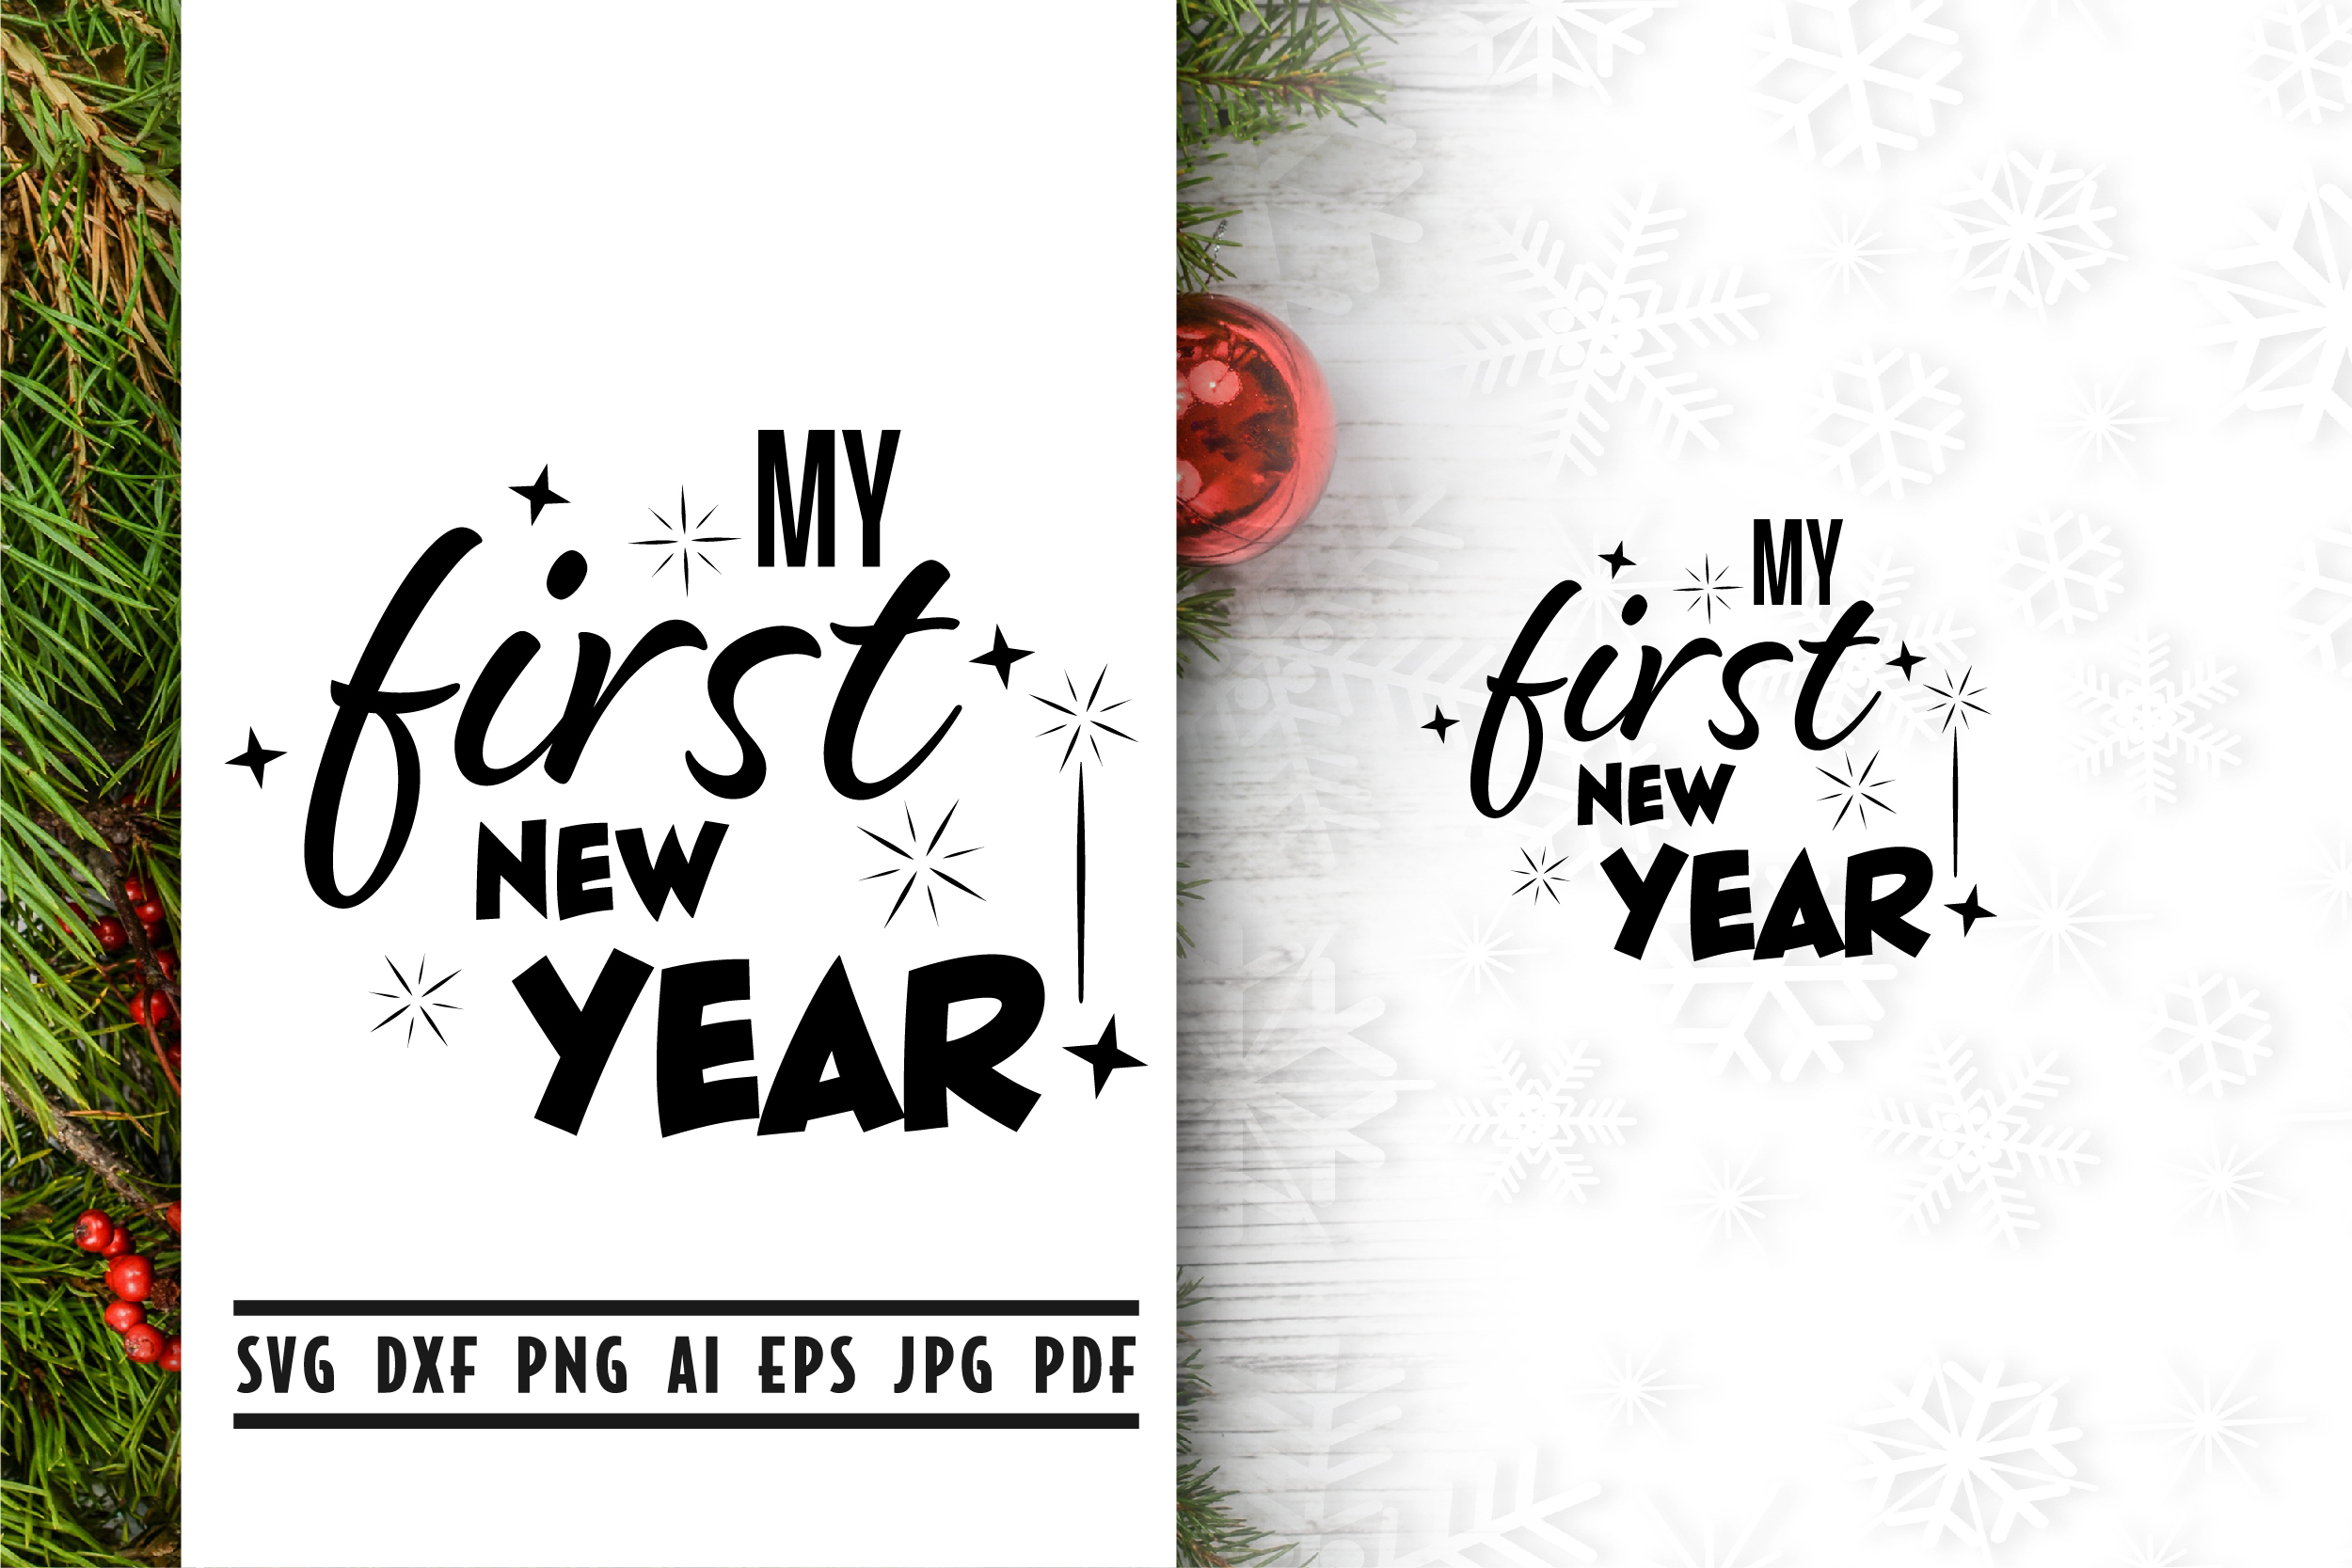 Download Free My First New Year Quote Graphic By Vectorbundles Creative Fabrica for Cricut Explore, Silhouette and other cutting machines.